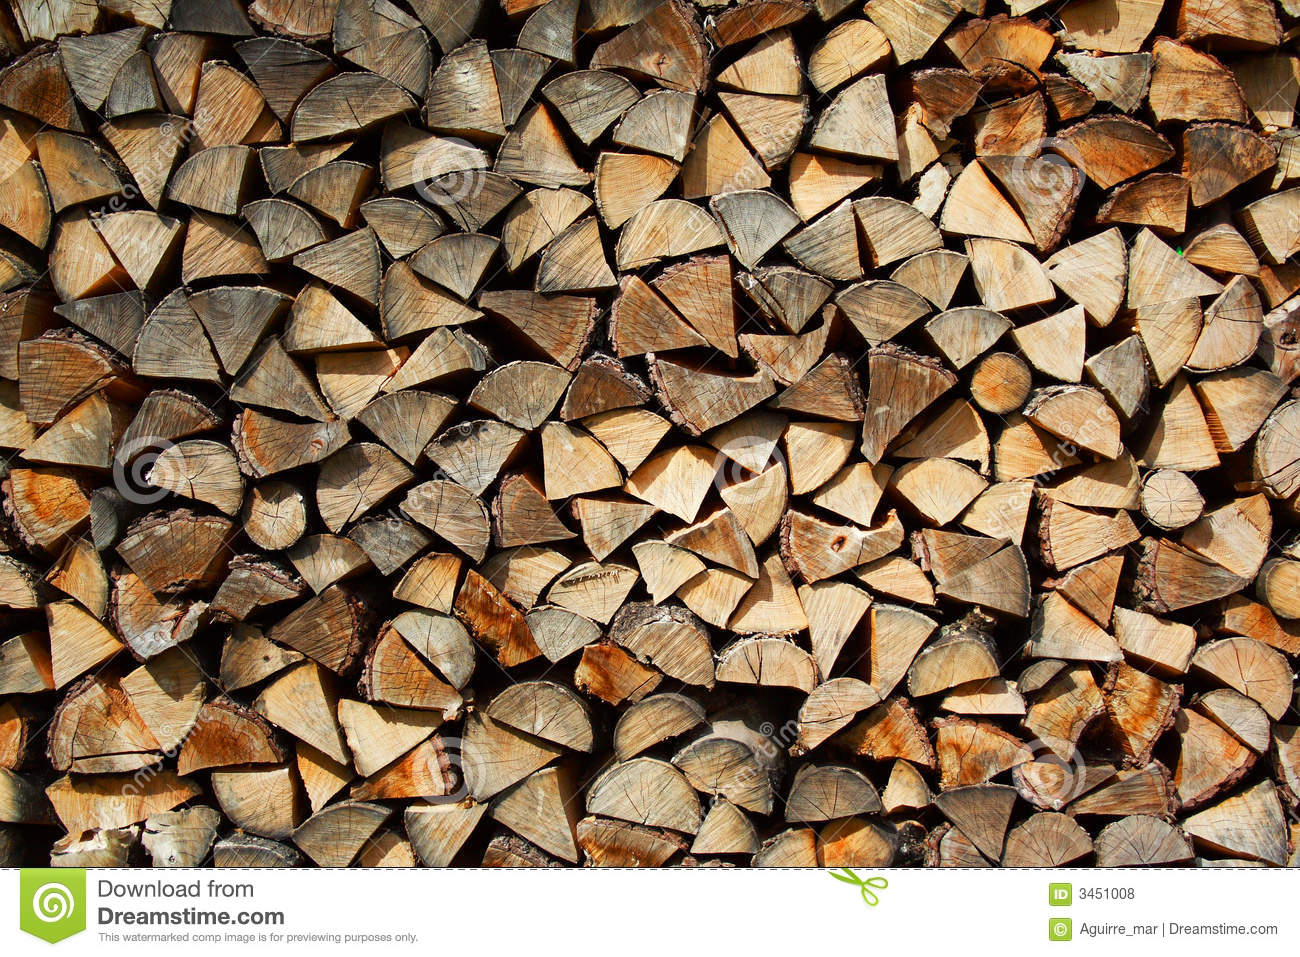 Wood on the fuel